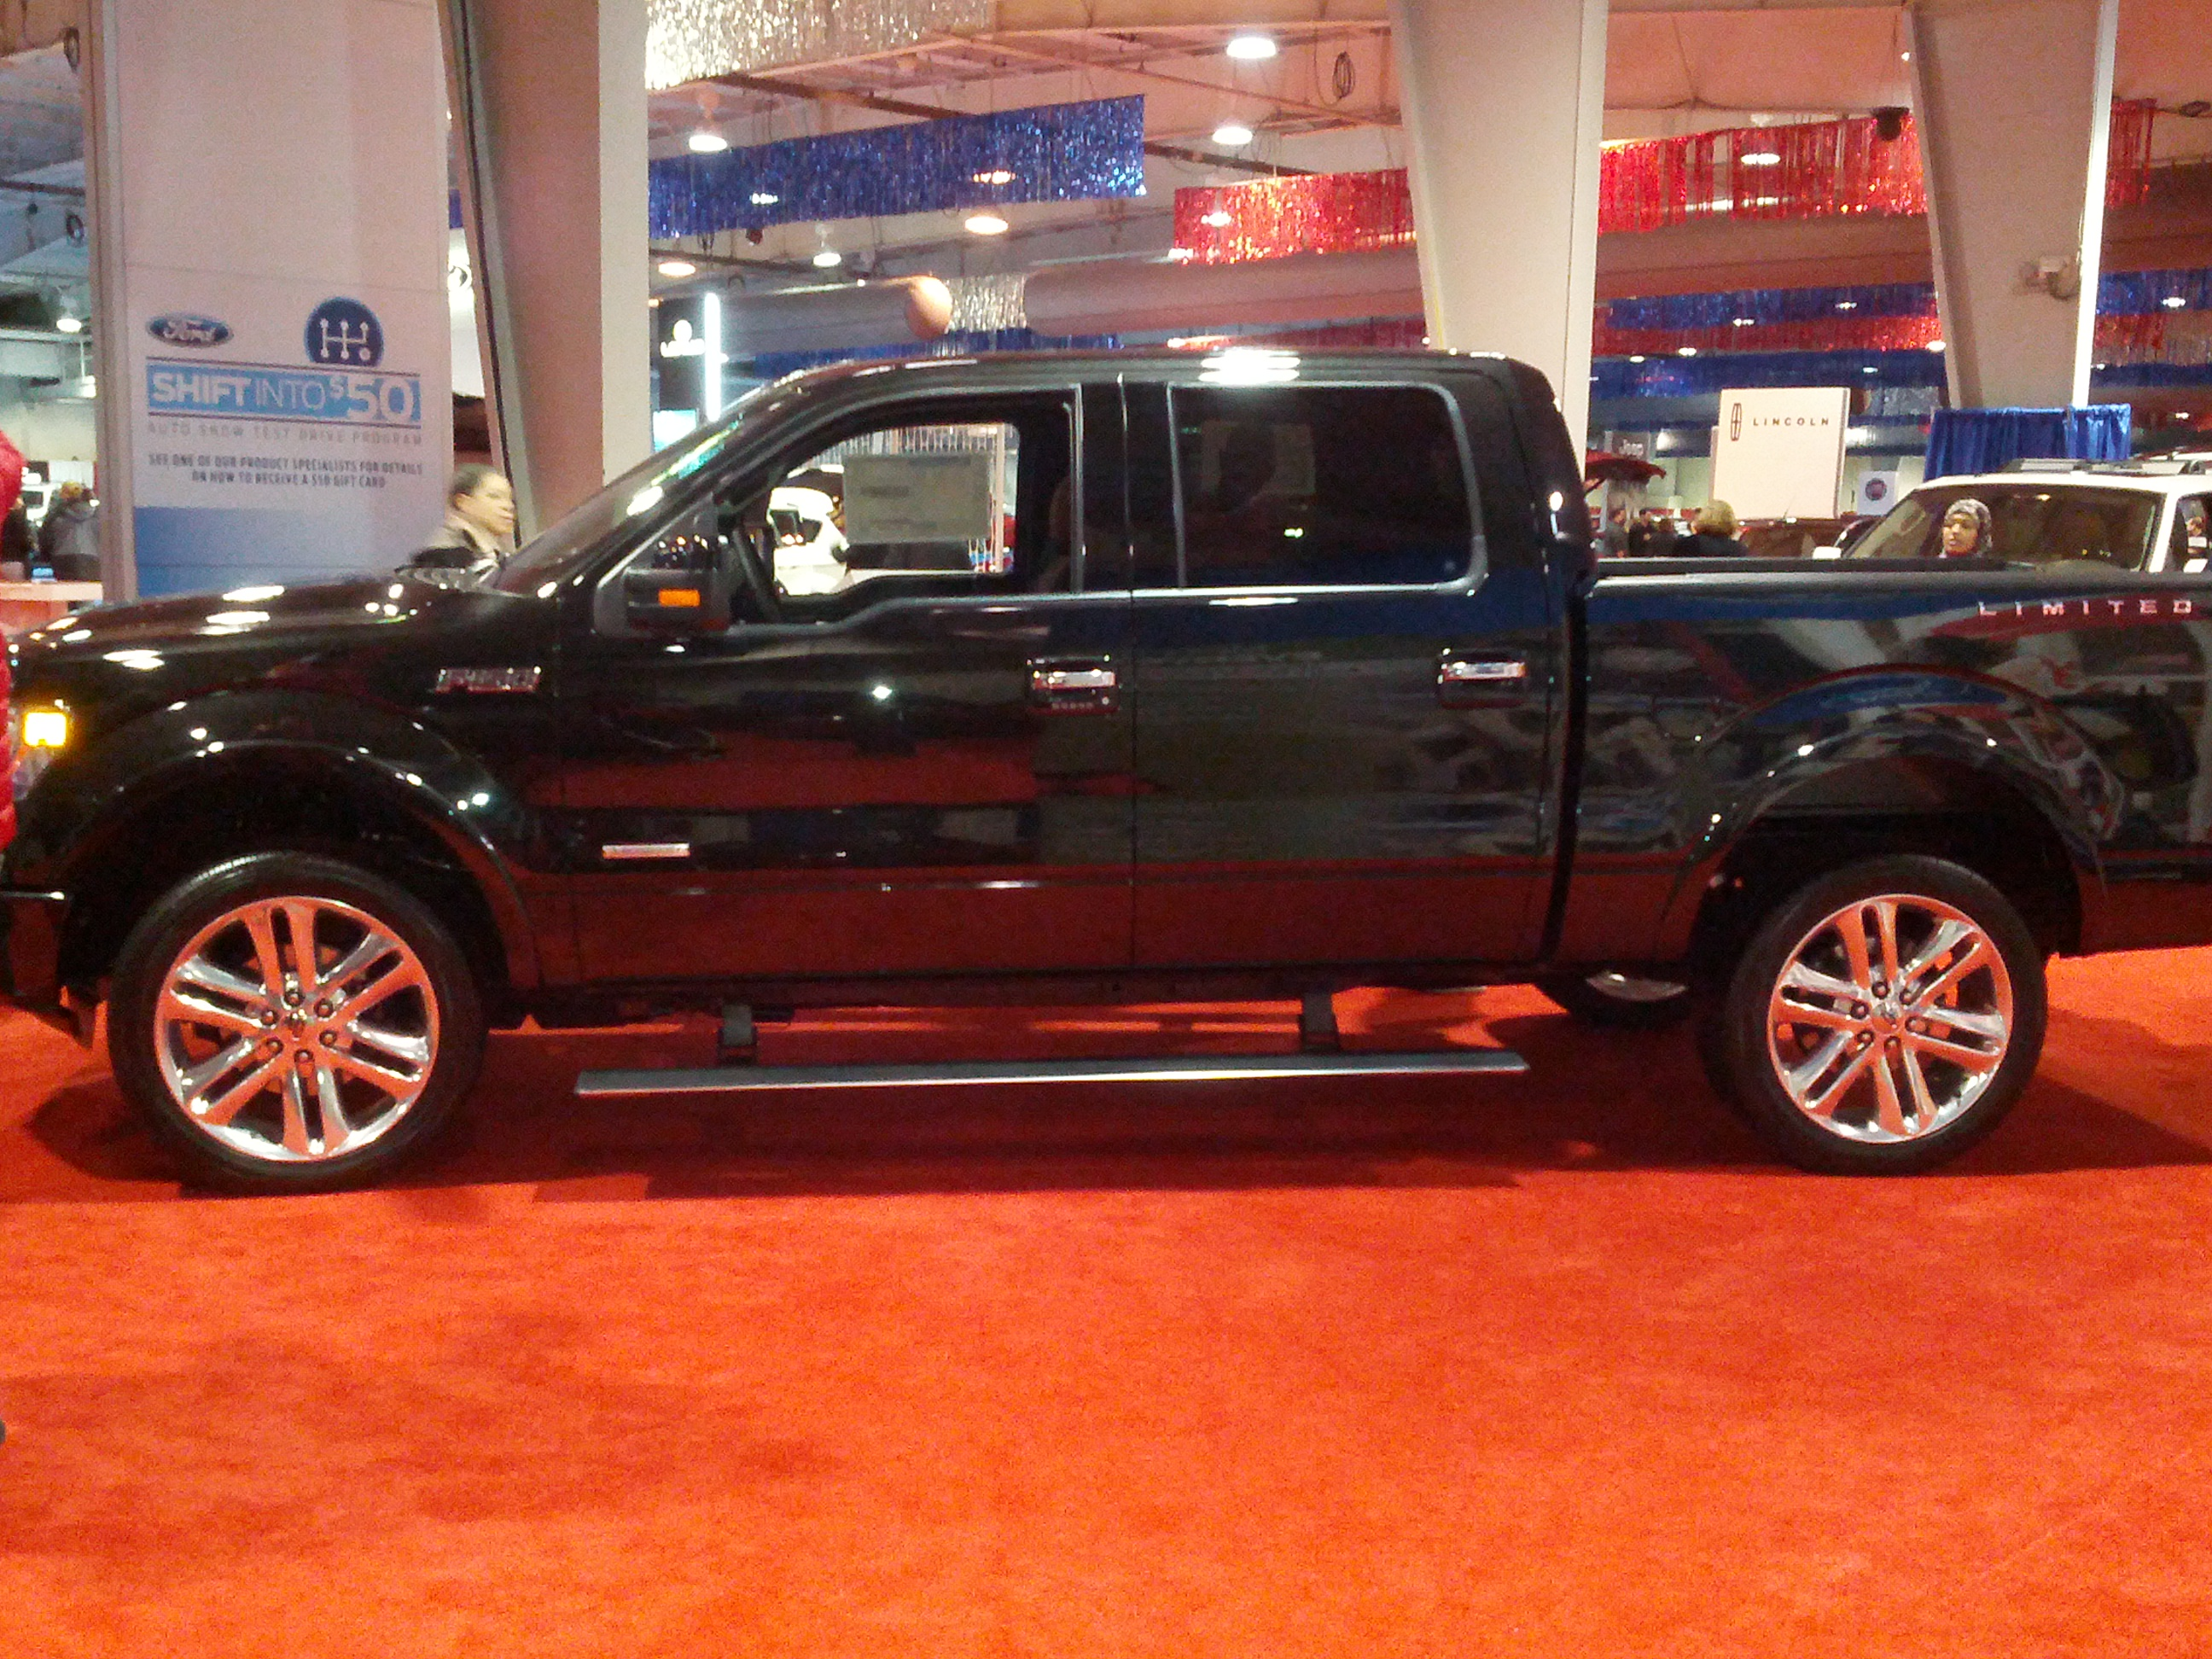 2013 ford f150 limited side stevens virtual automotive museum. Black Bedroom Furniture Sets. Home Design Ideas